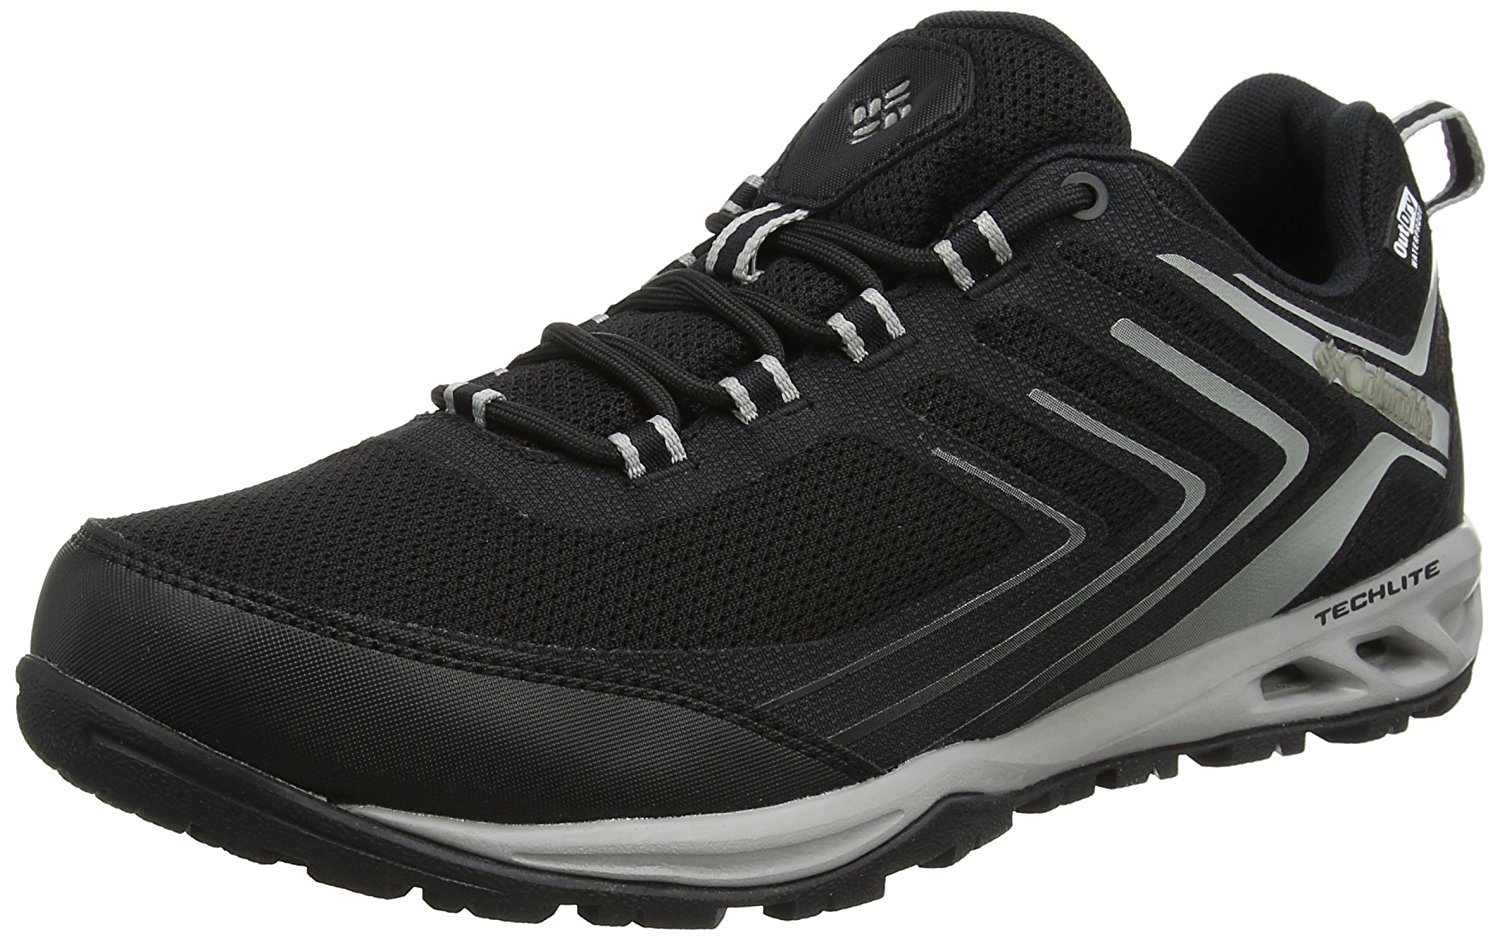 Chaussure multisport homme Columbia Amazon.fr